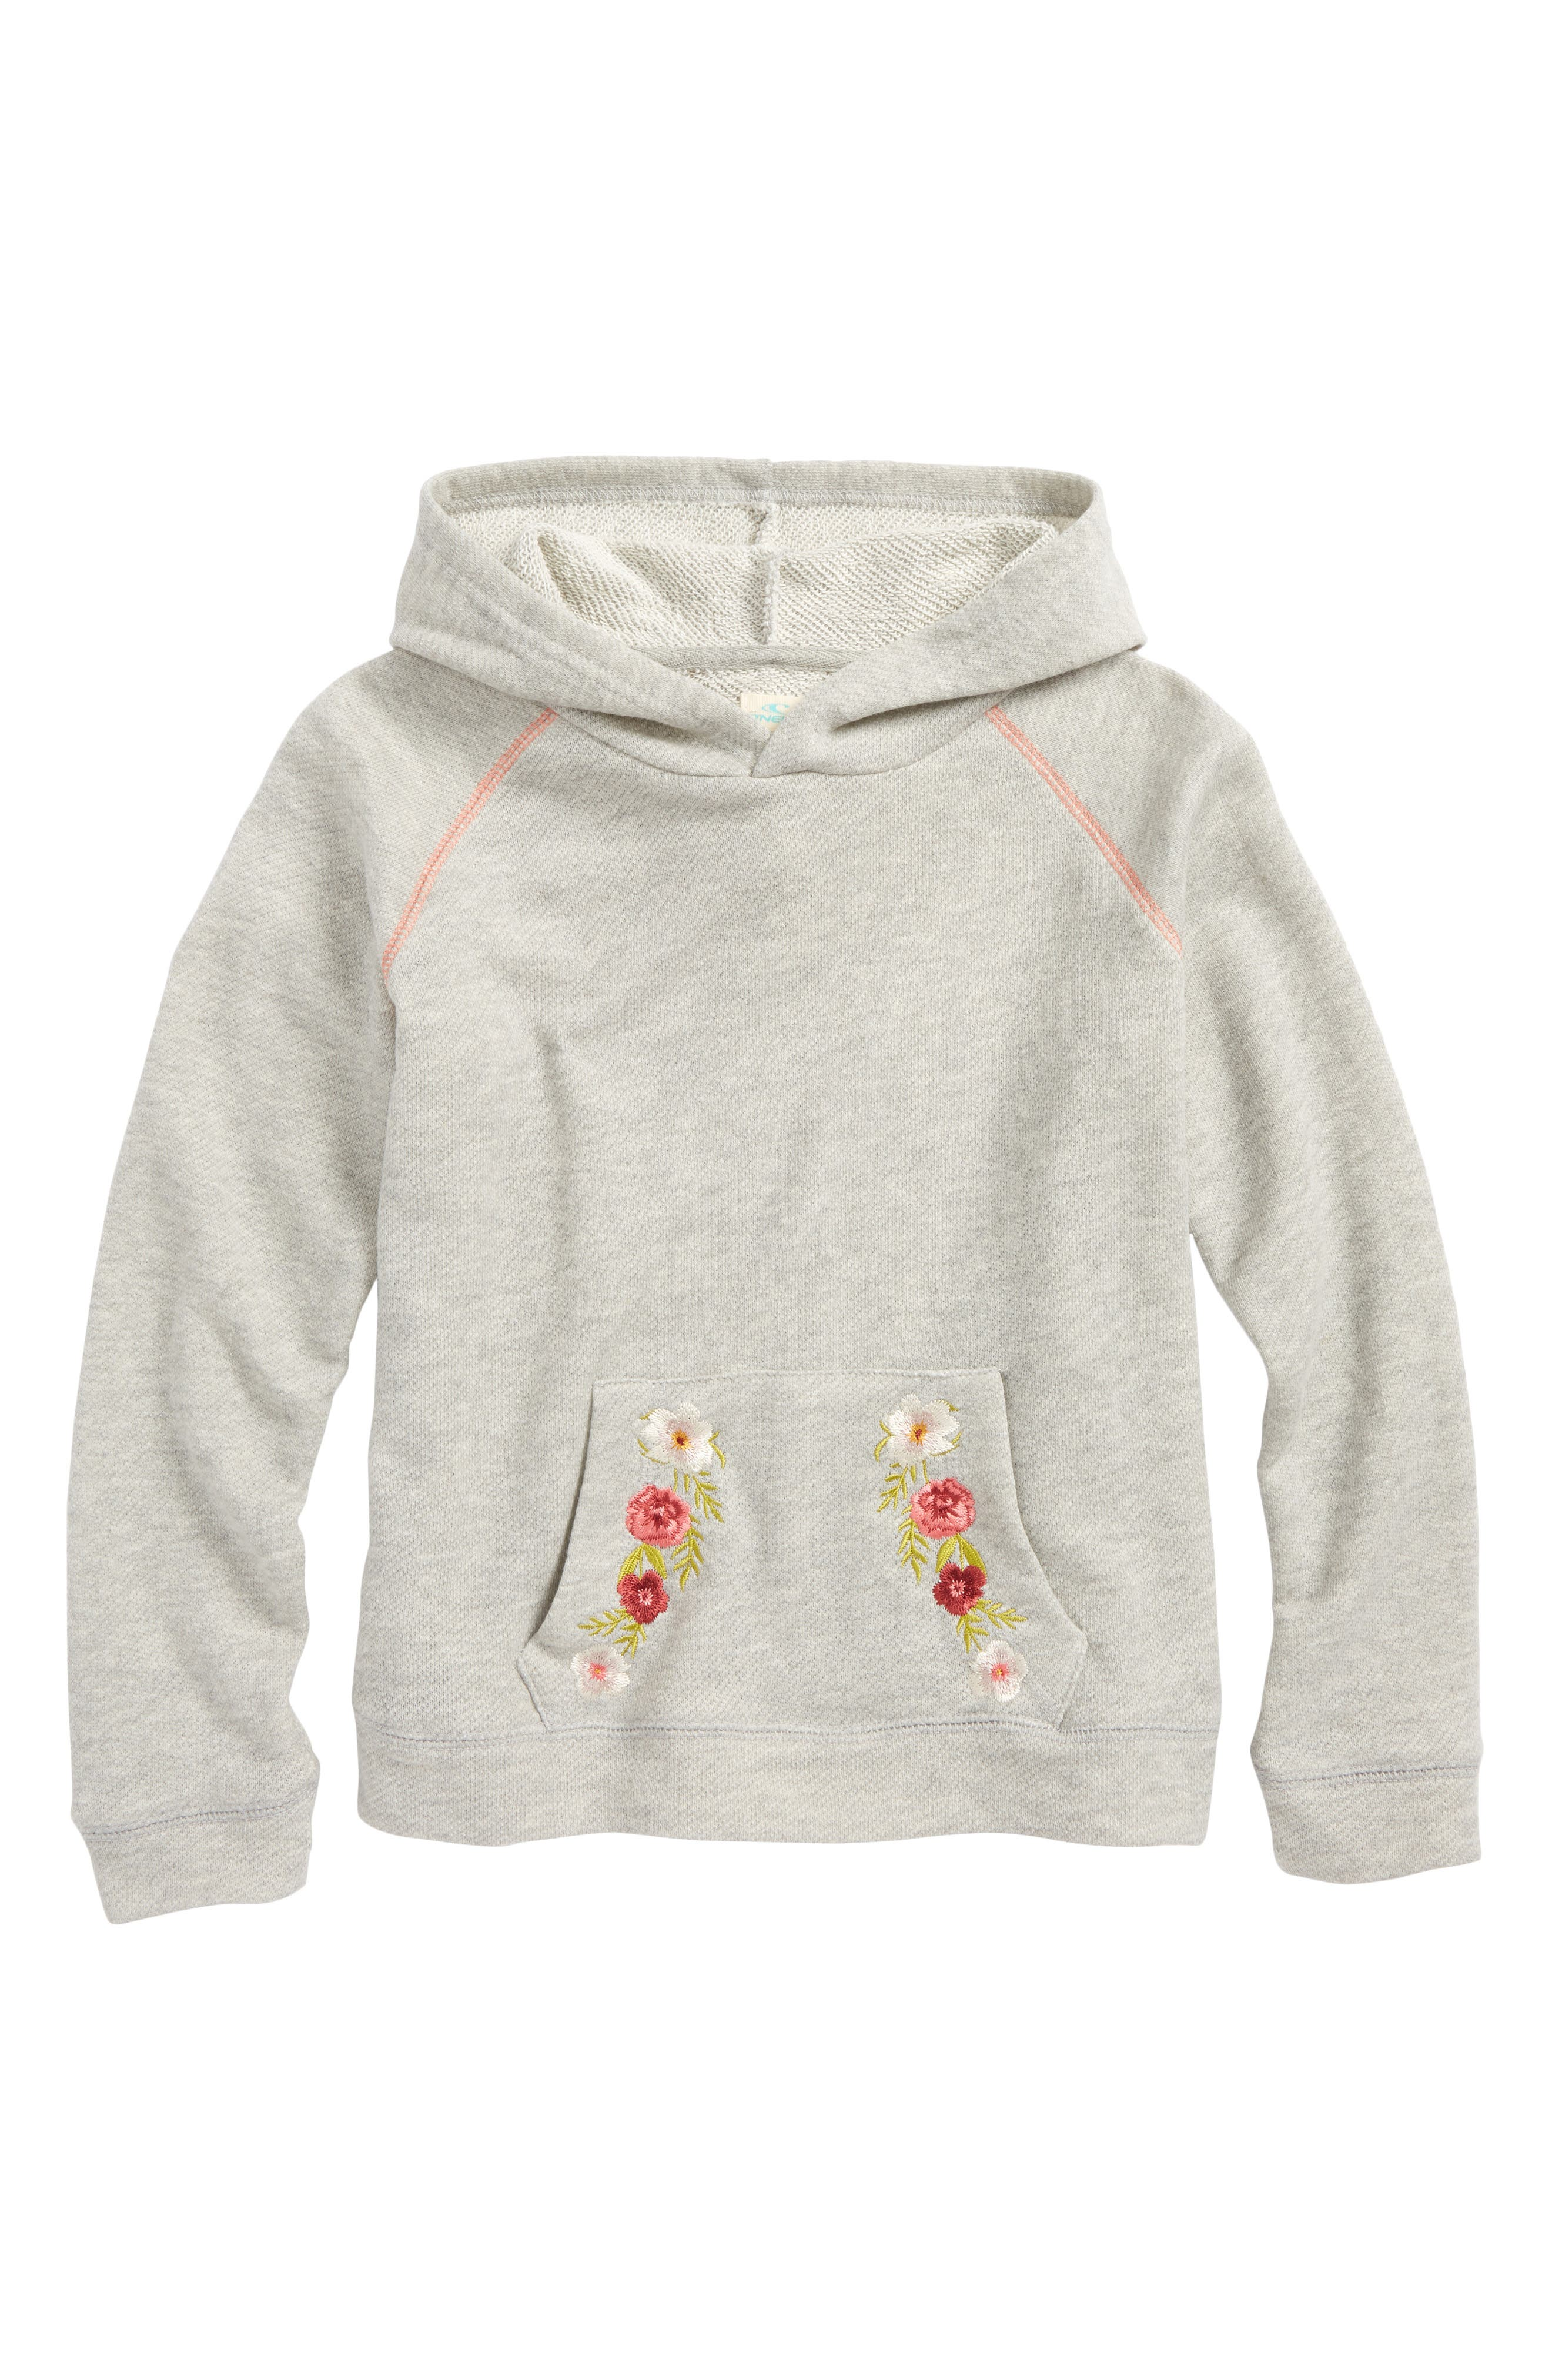 Brianna Pullover Hoodie,                             Main thumbnail 1, color,                             Heather Grey